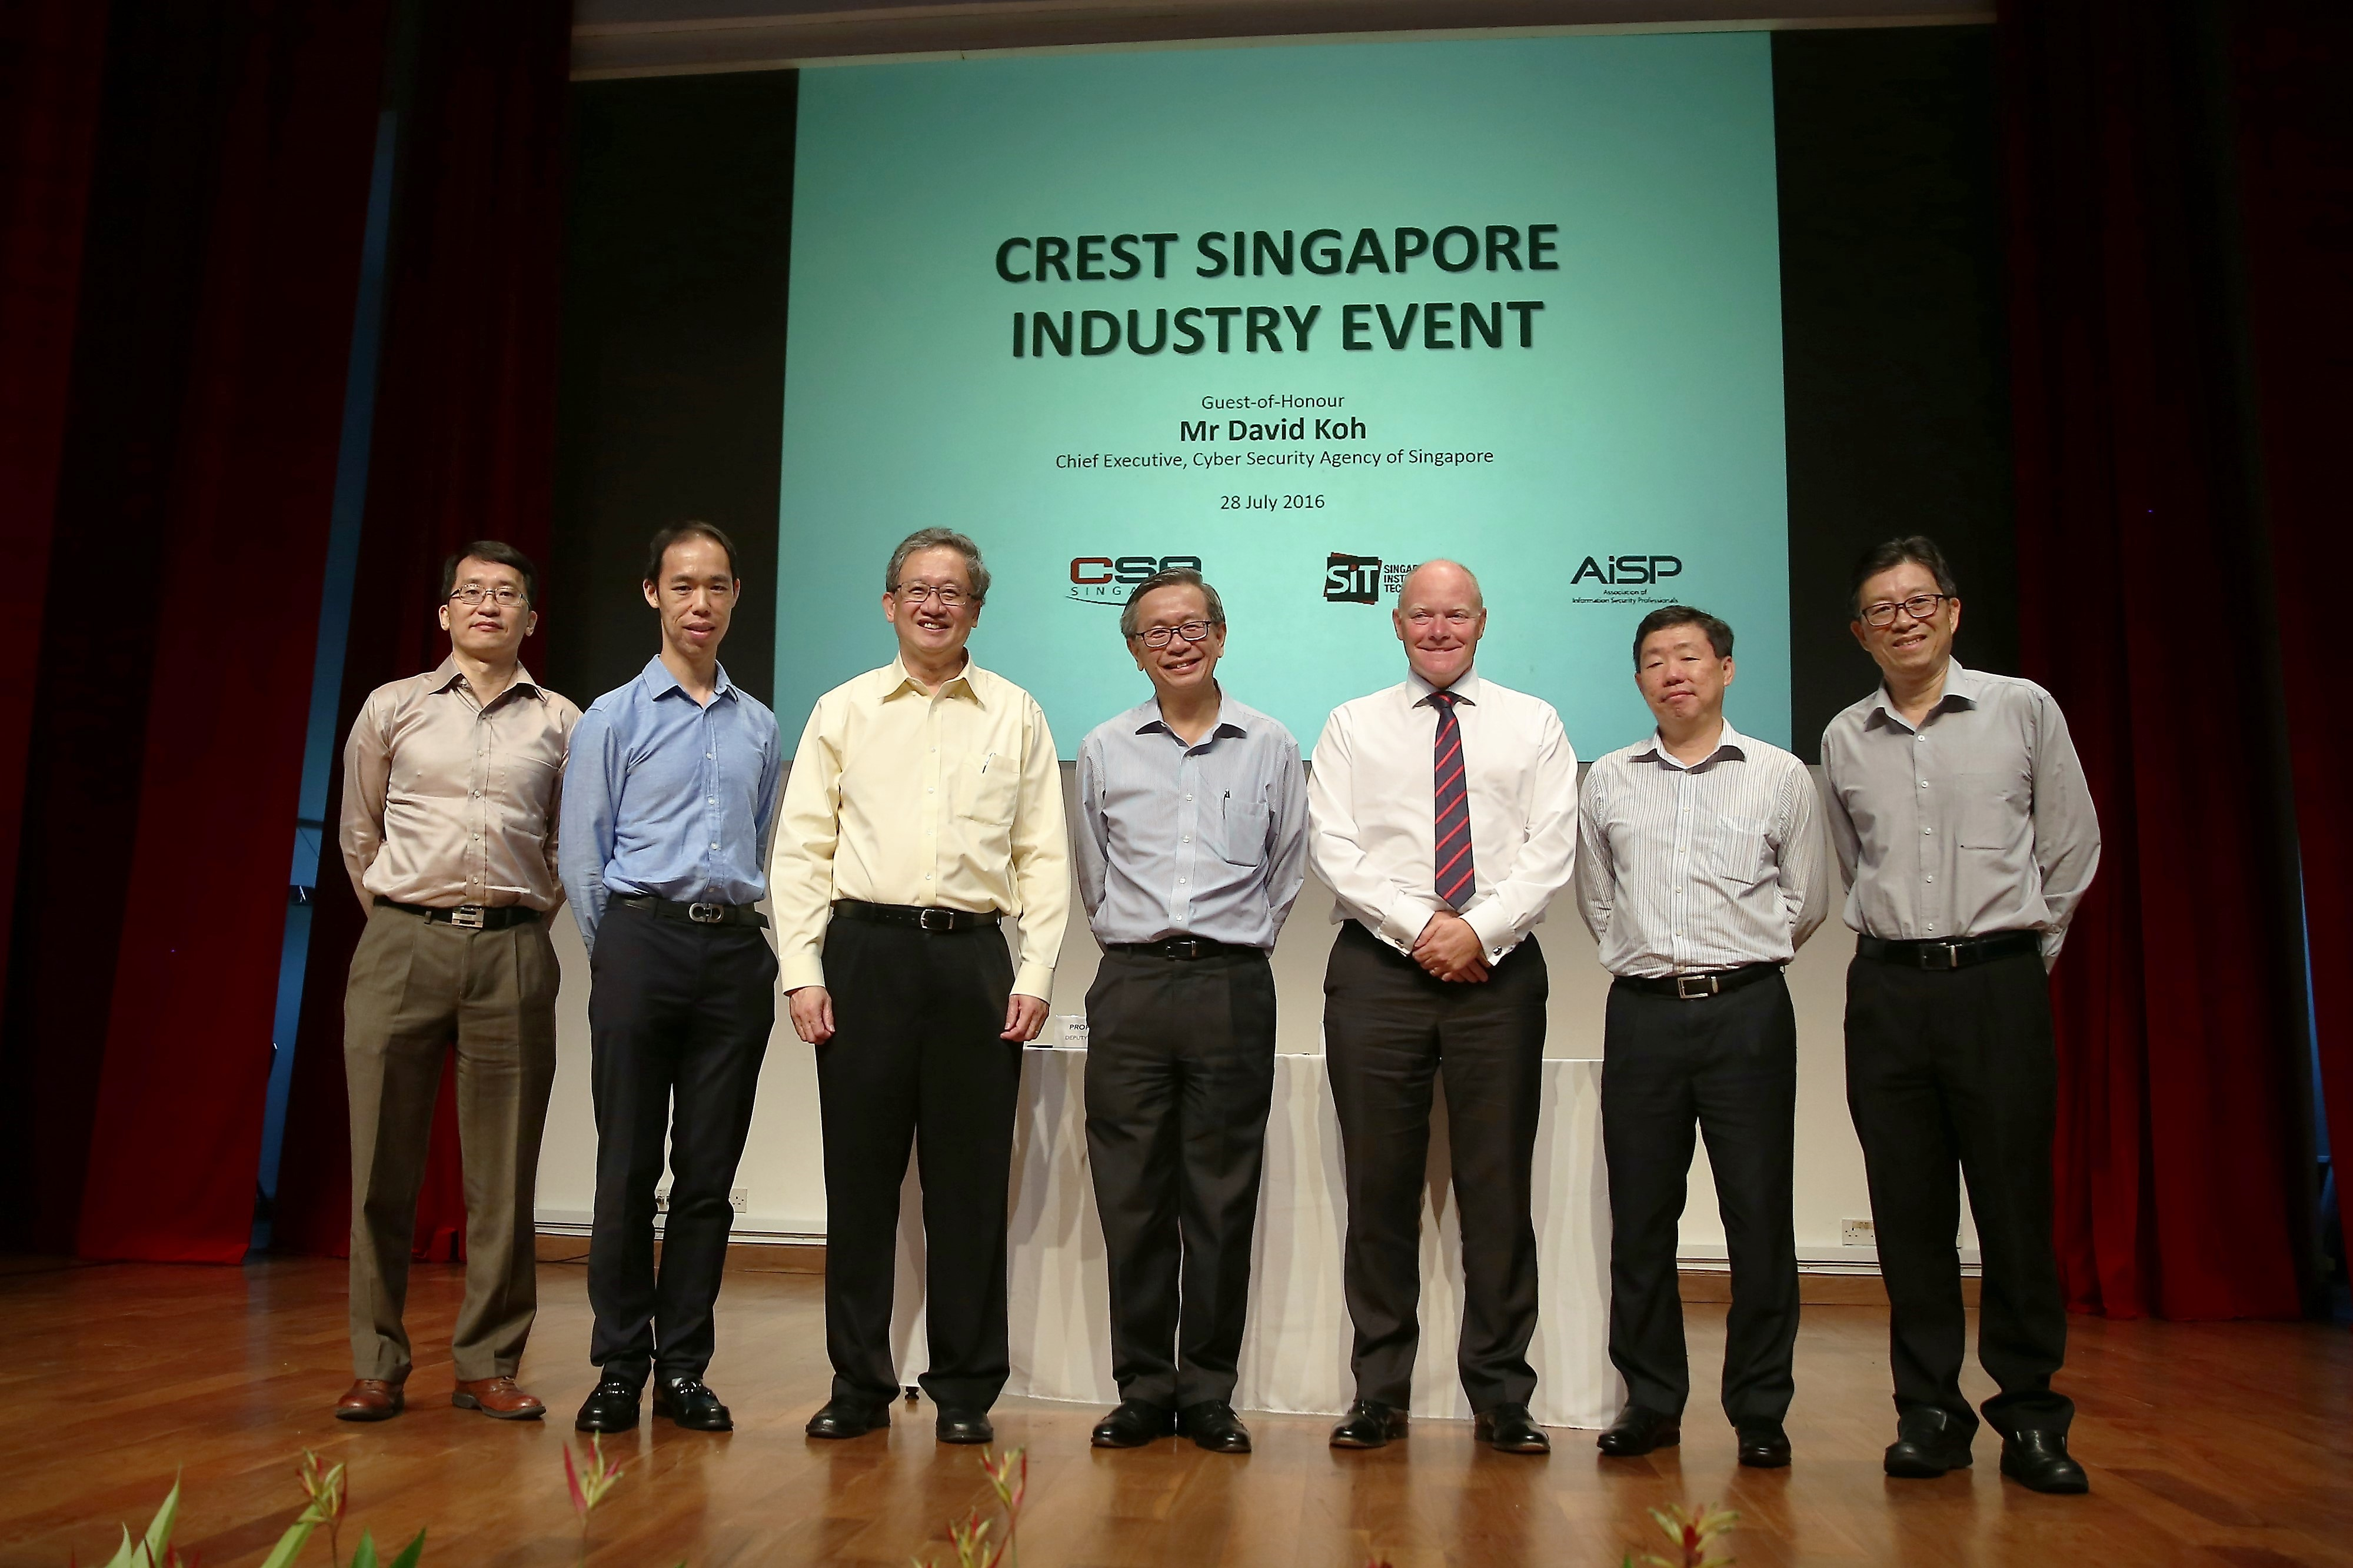 CREST Singapore Industry Event